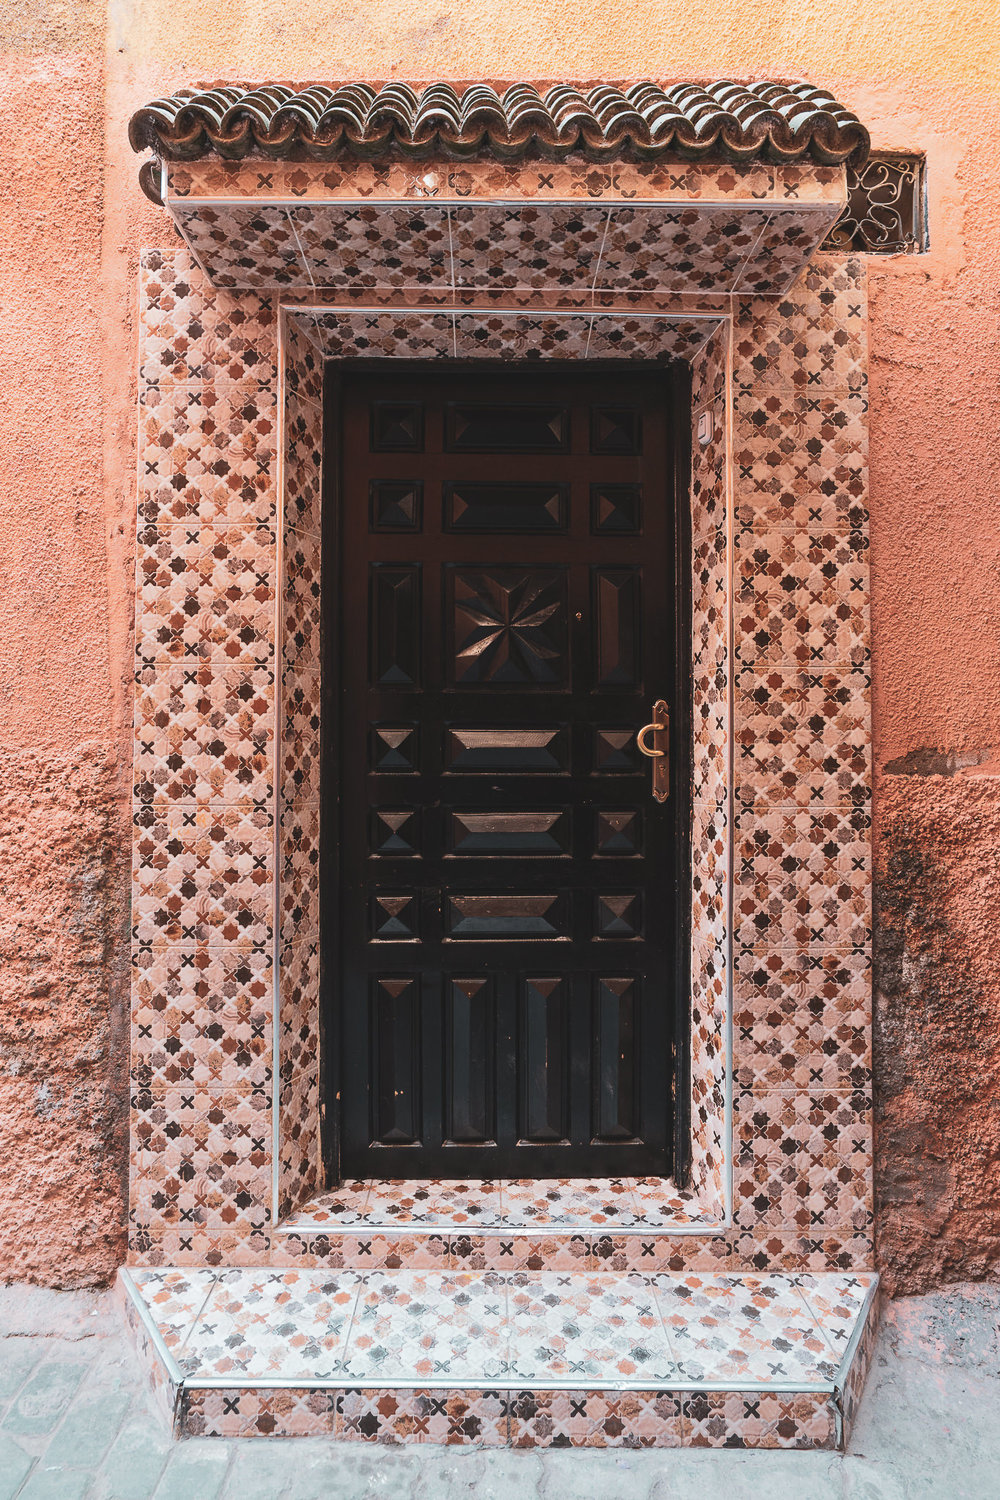 Marrakech ornate door #5